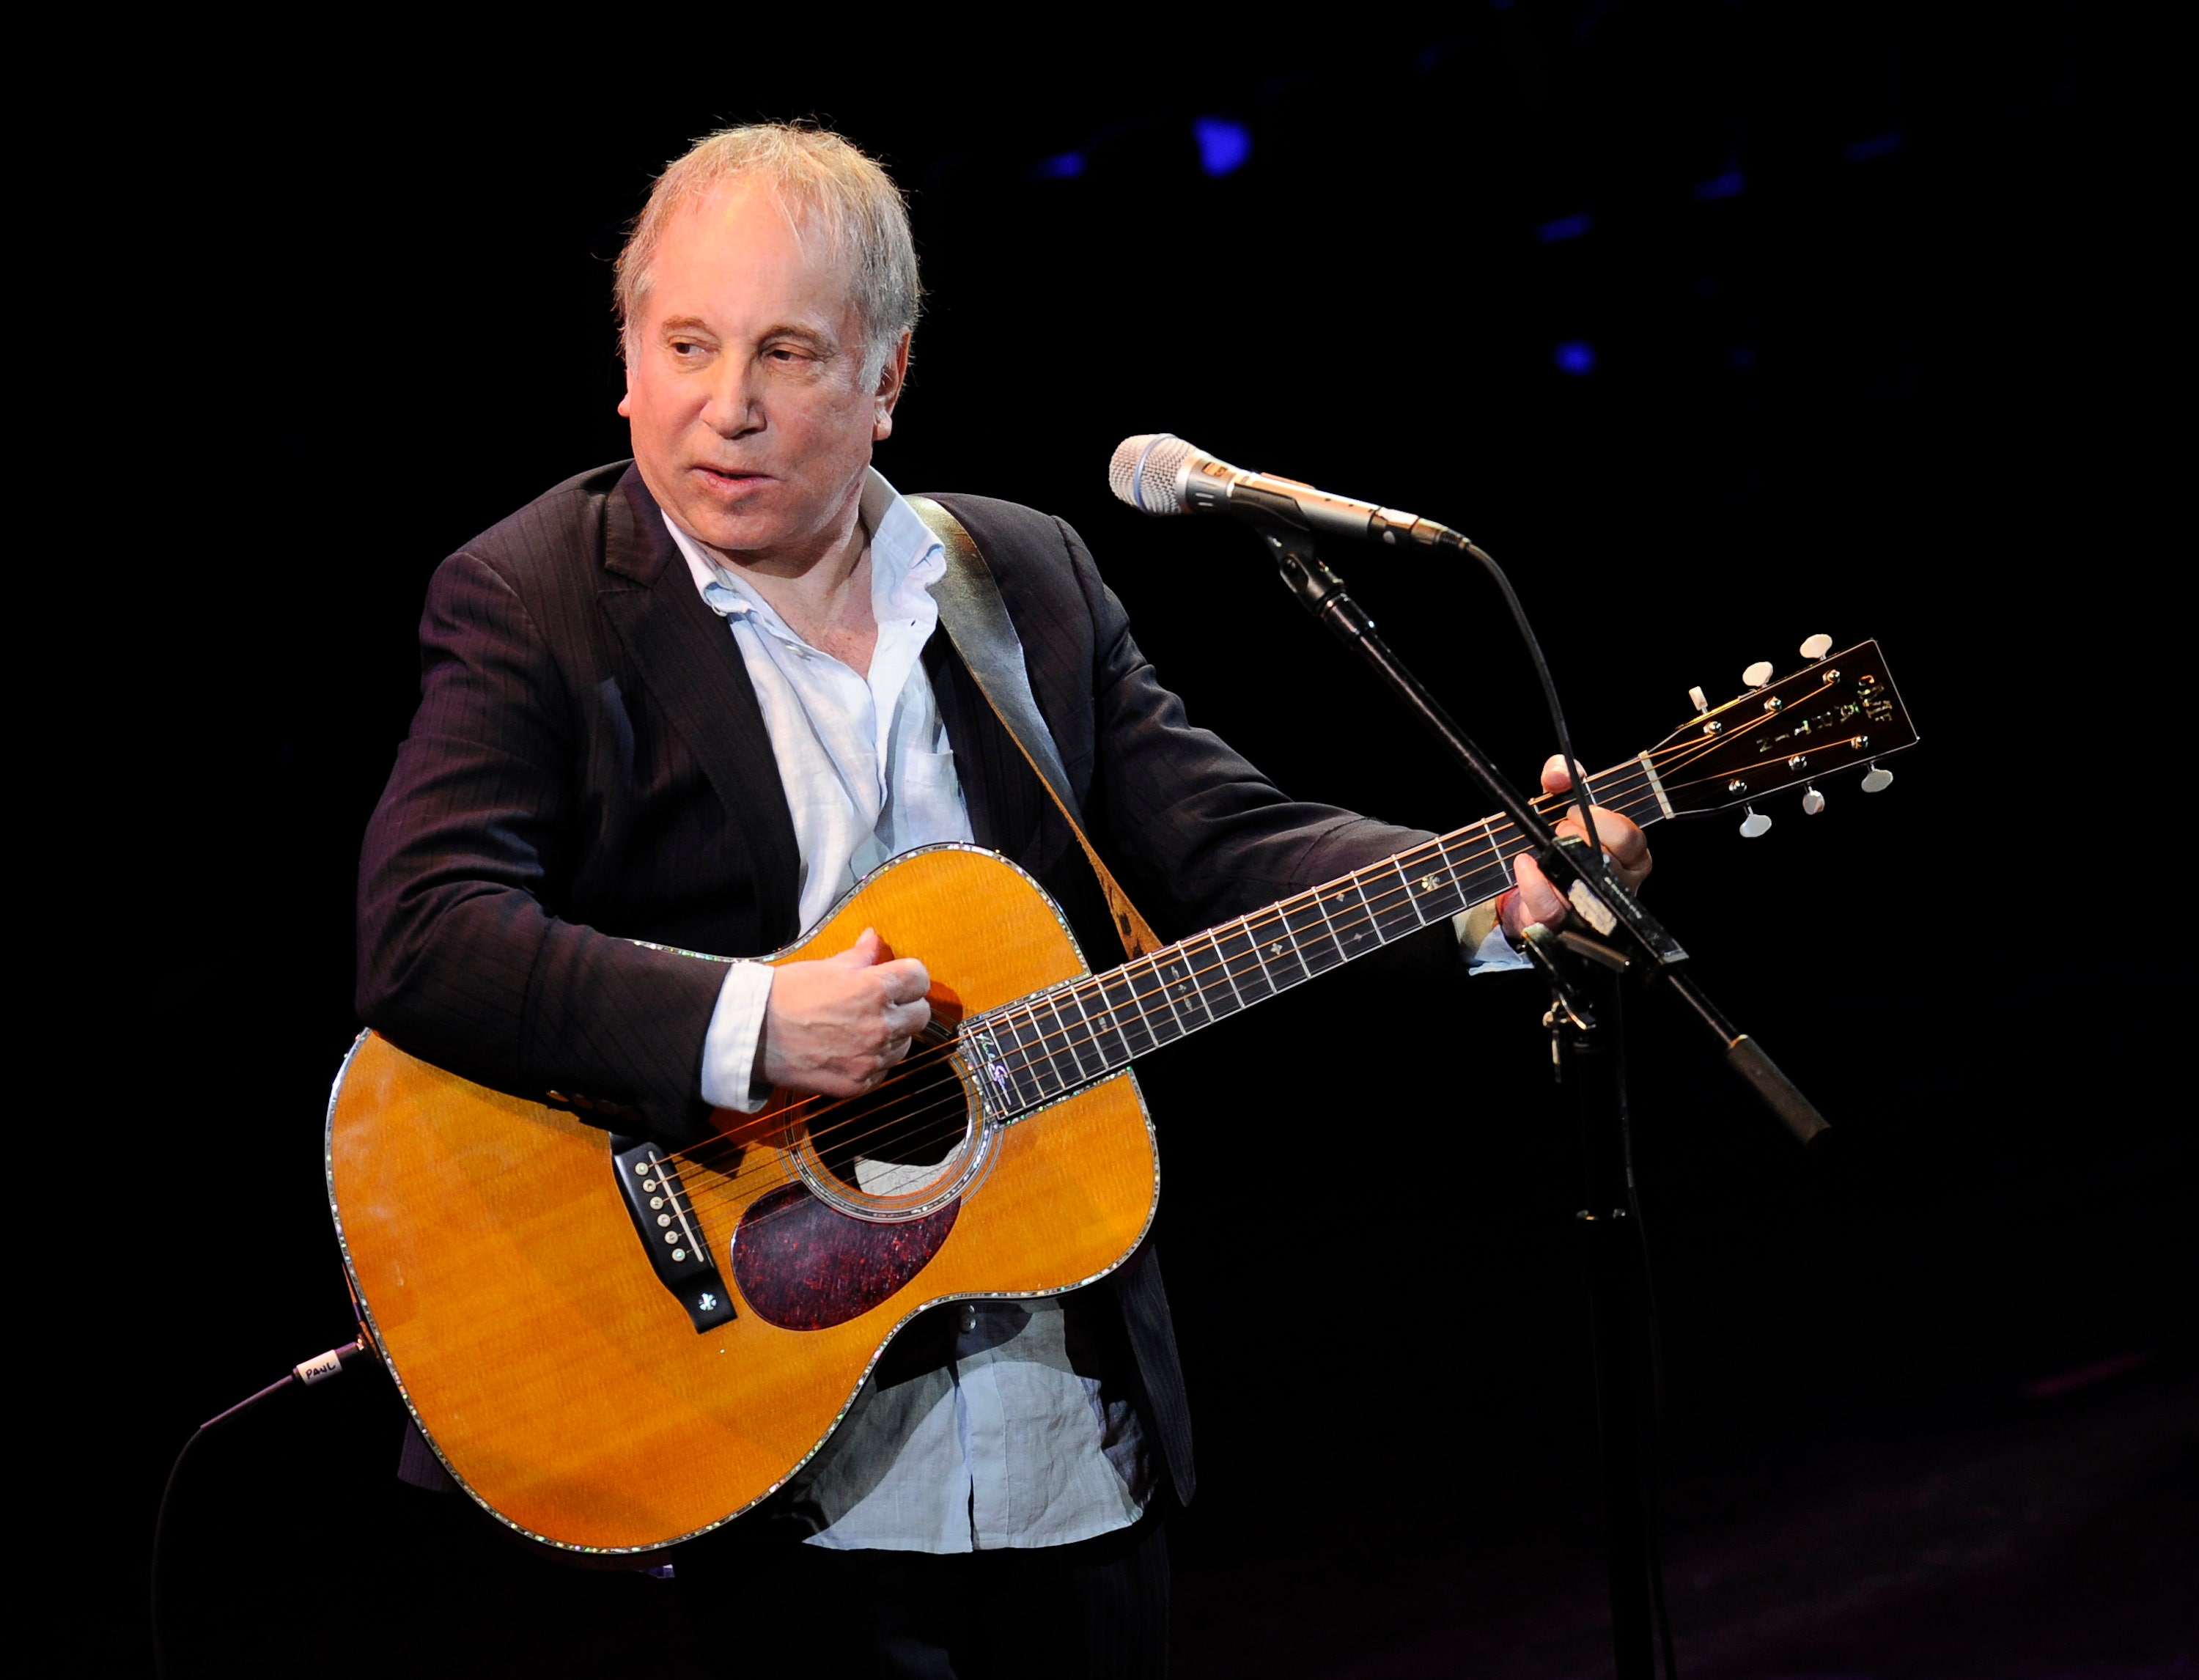 paul simon edie brickell arrested and charged with disorderly conduct fox news. Black Bedroom Furniture Sets. Home Design Ideas